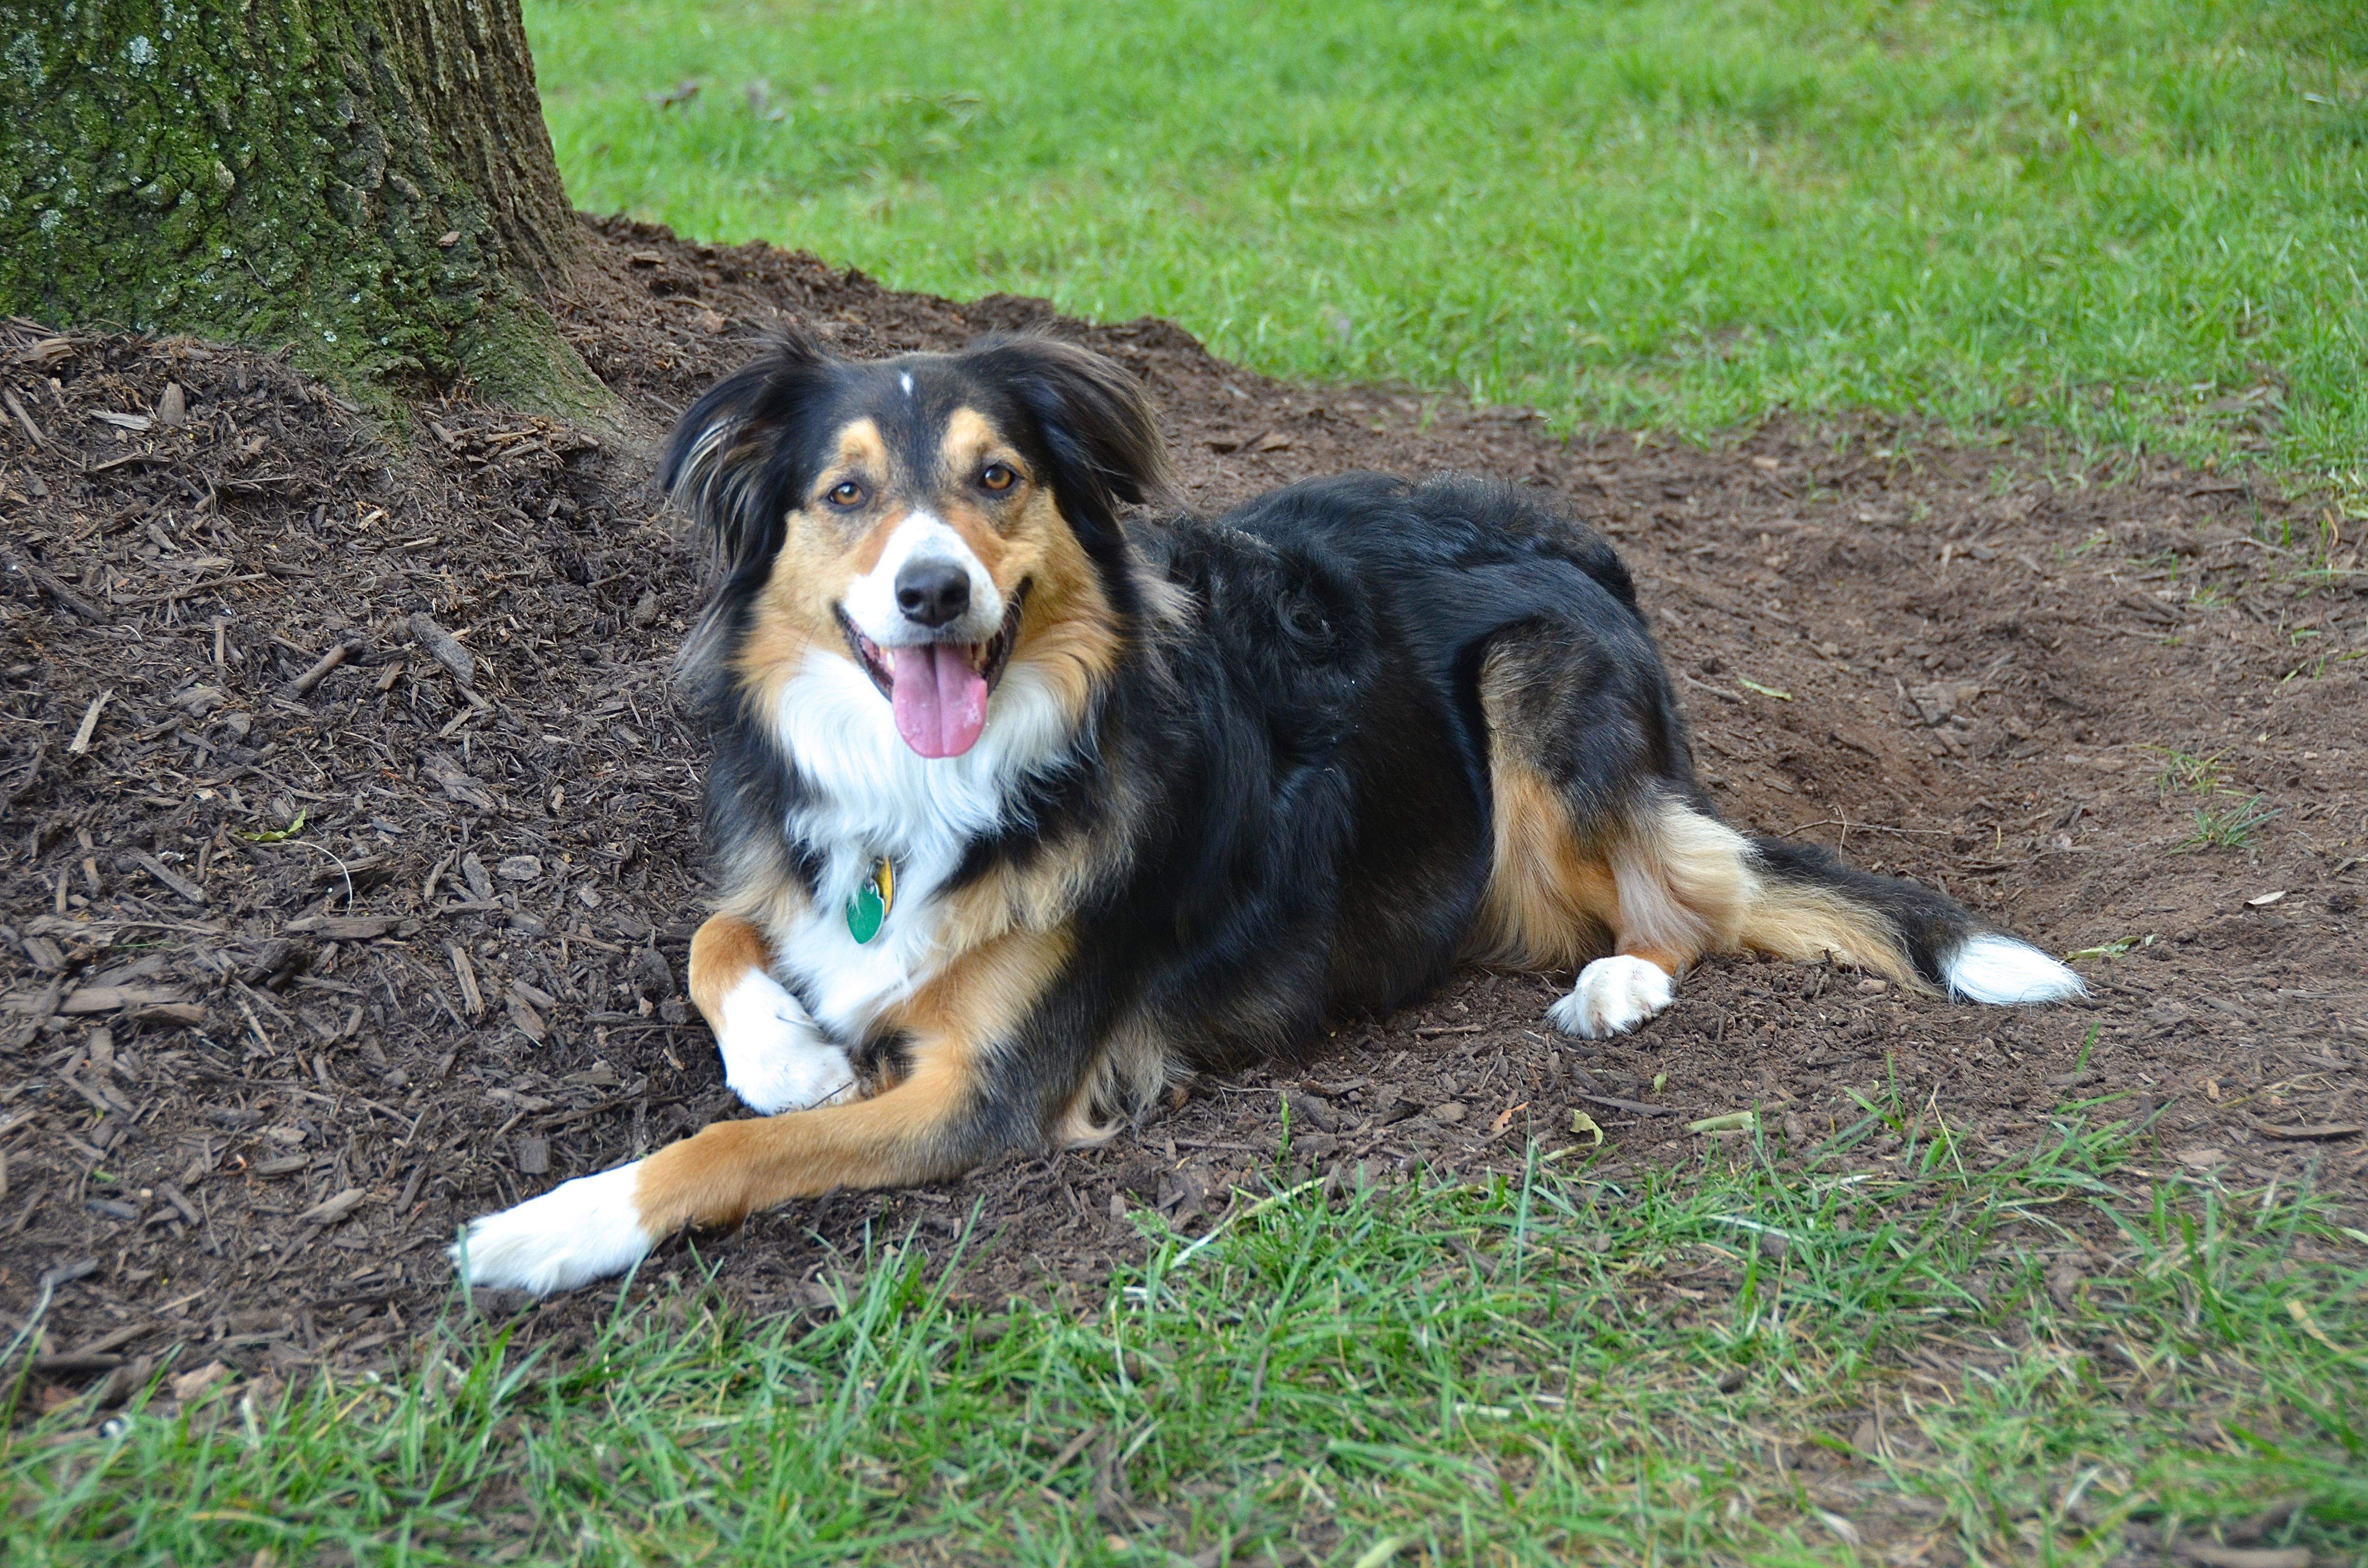 Pin By Patte Dotson On Dog Breeds English Shepherd Dog Breeds Herding Dogs Breeds